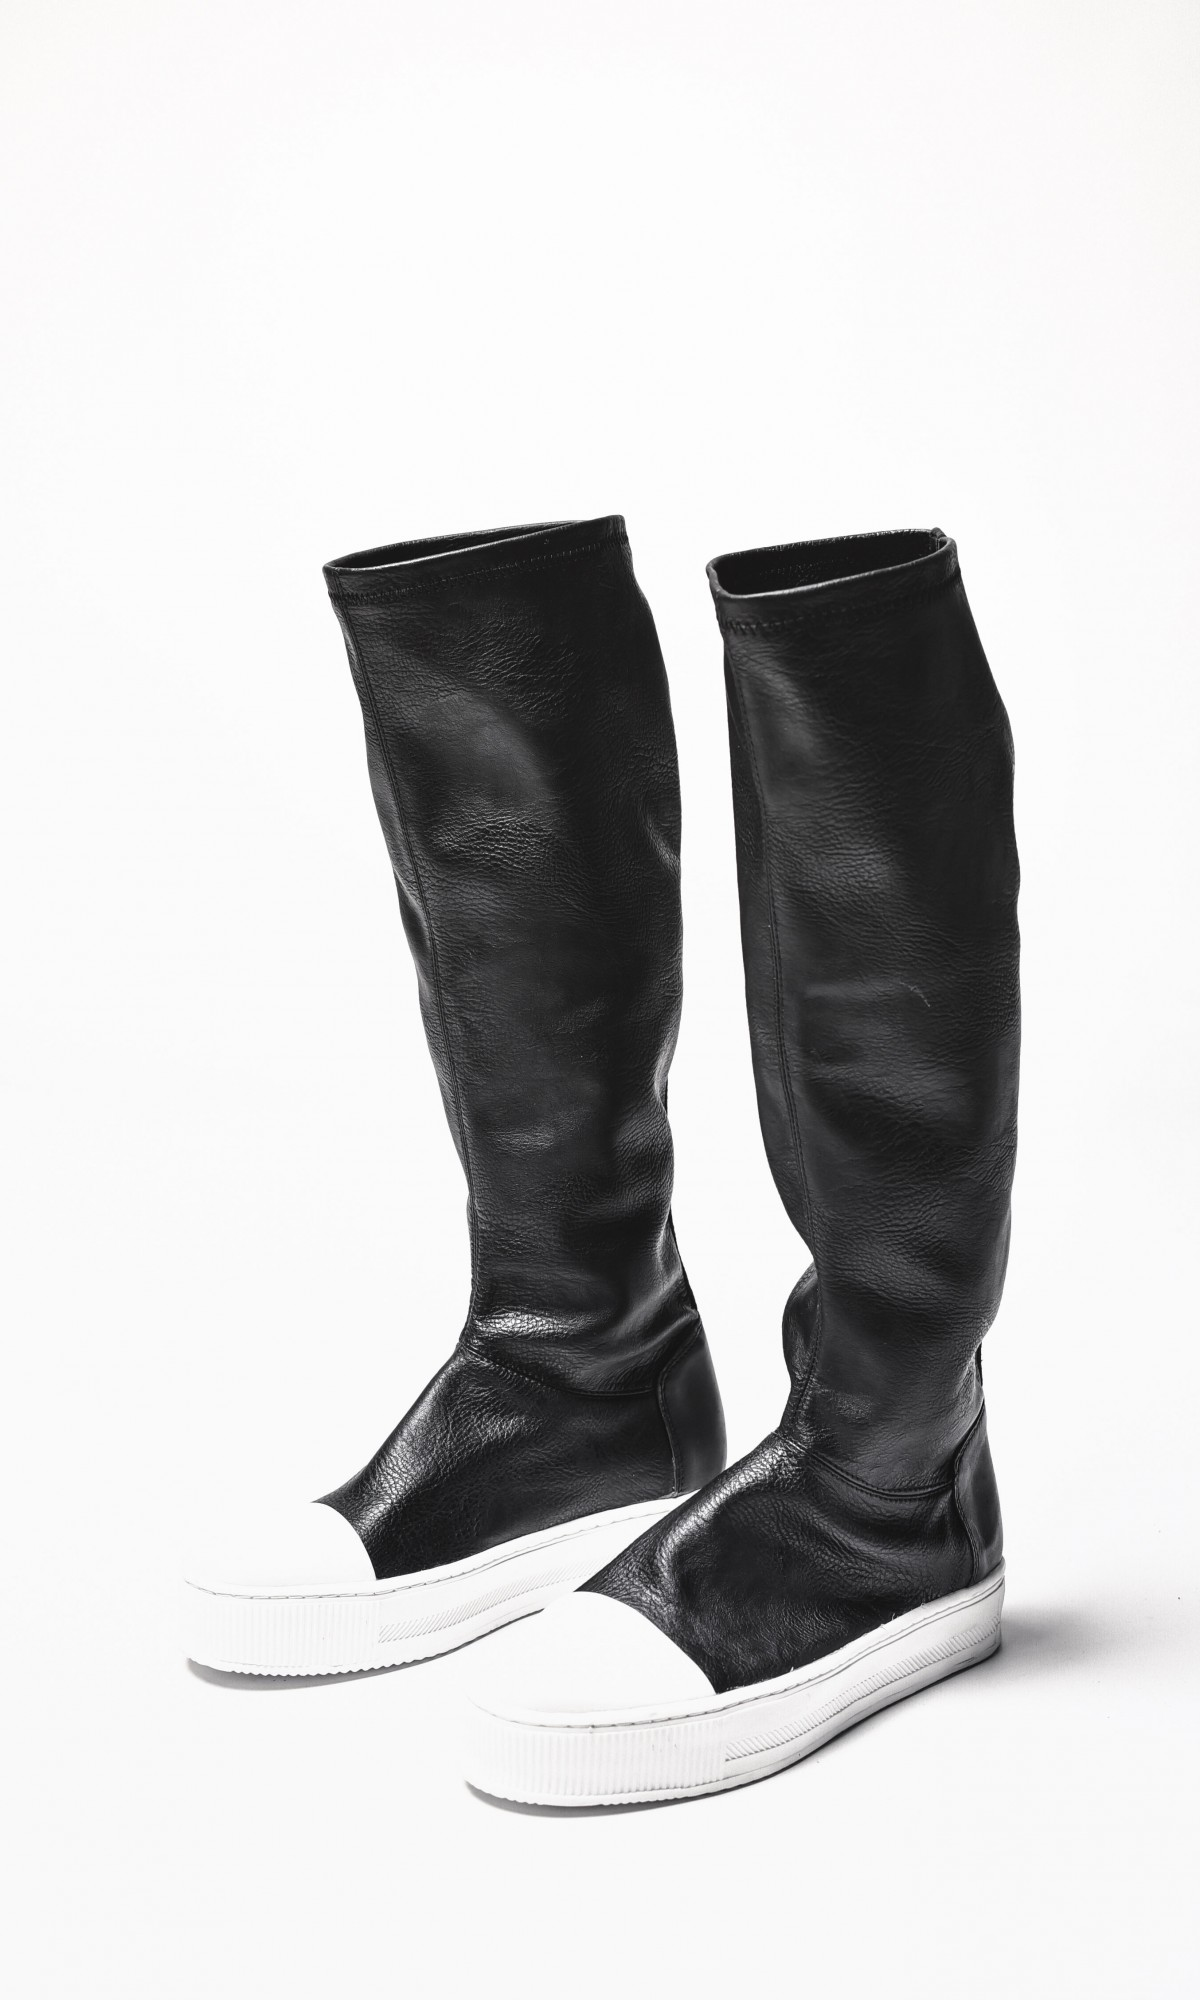 Boots - Genuine Leather High Elastic Boots A21490